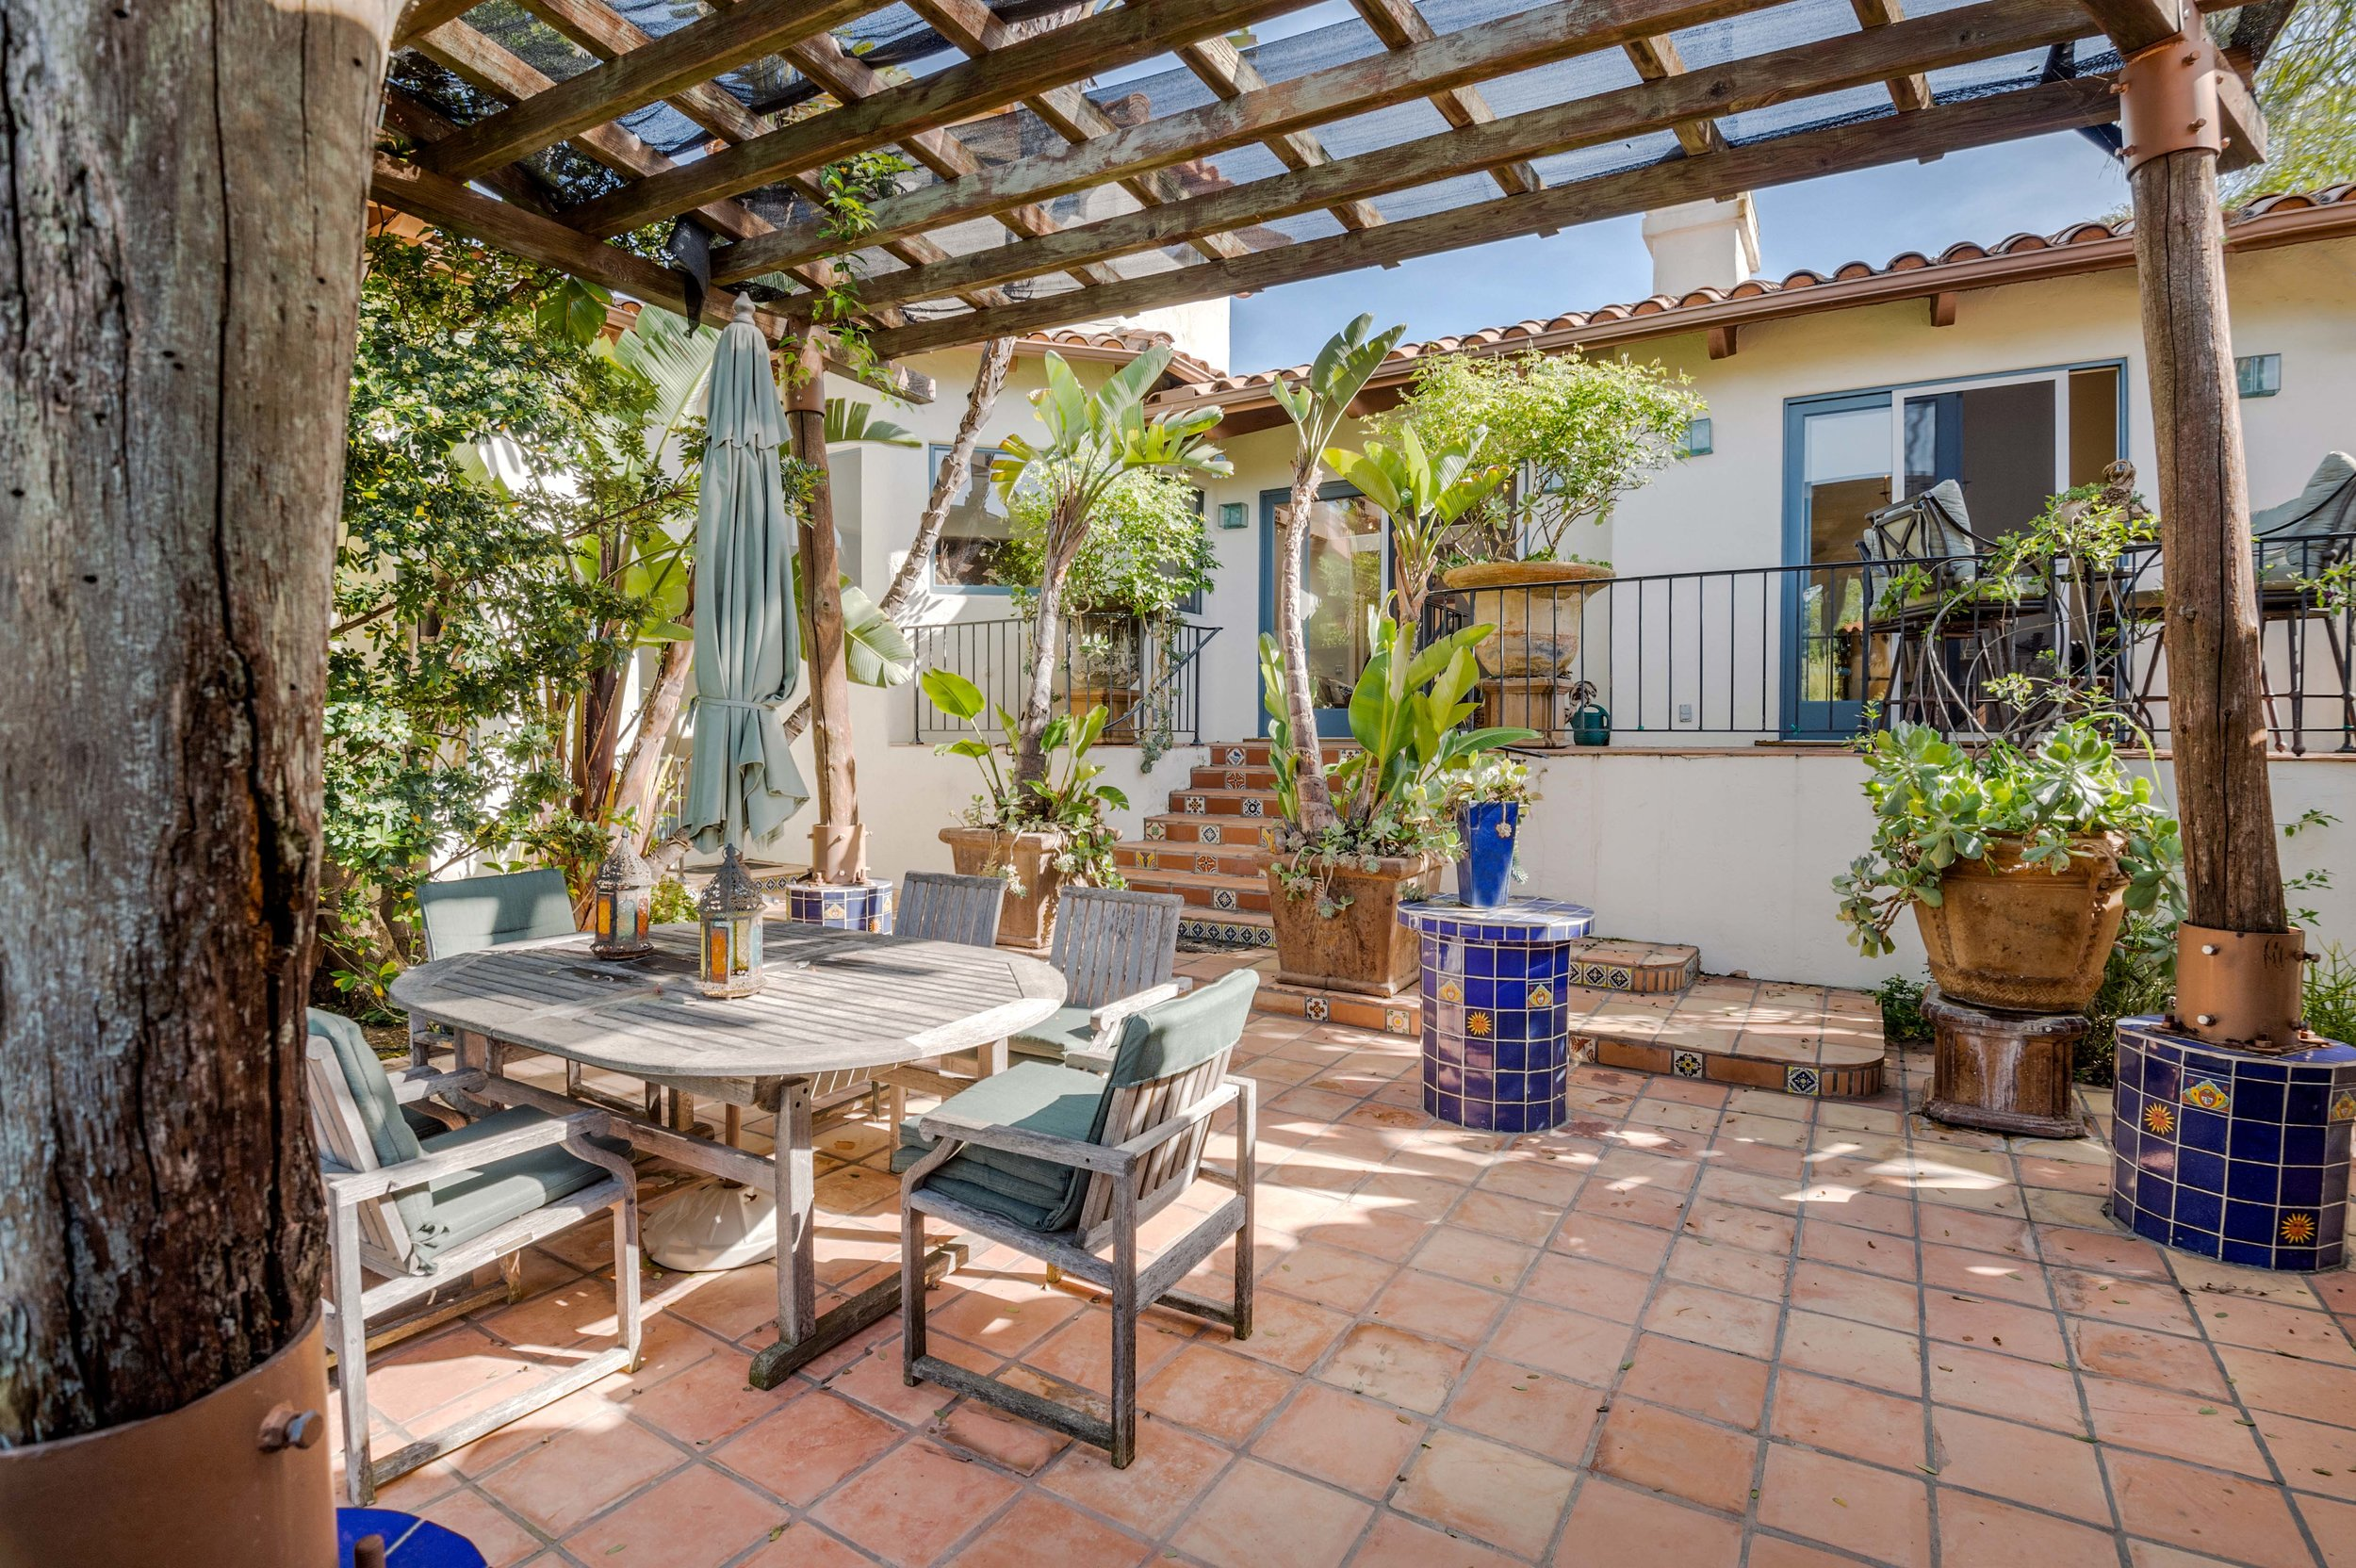 011 Patio 20333 Reigate Road Topanga For Sale Lease The Malibu Life Team Luxury Real Estate.jpg